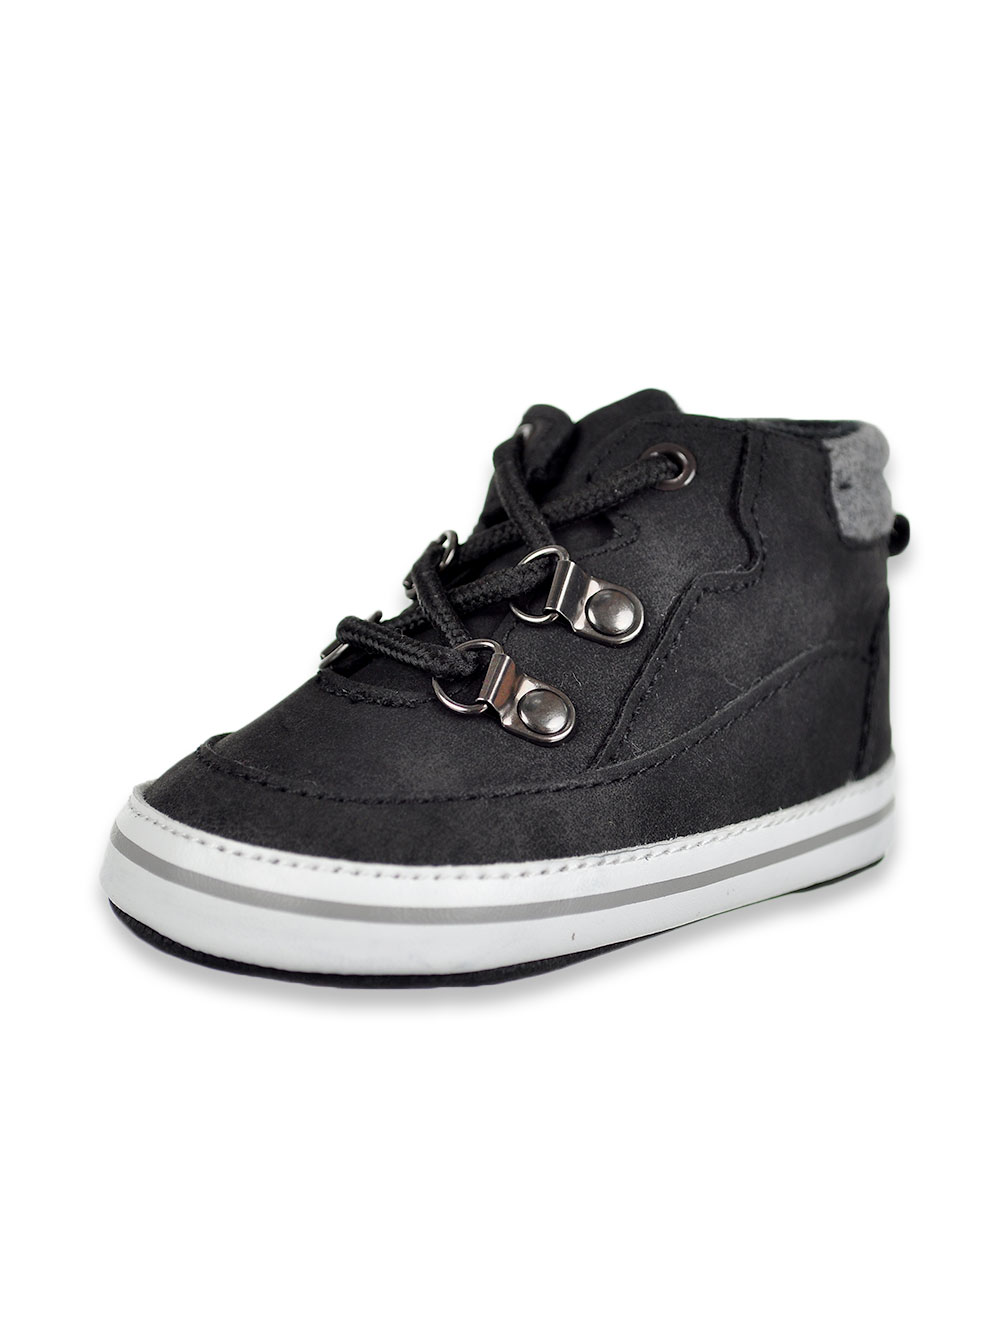 U.S. Polo Assn. Sneakers and Booties